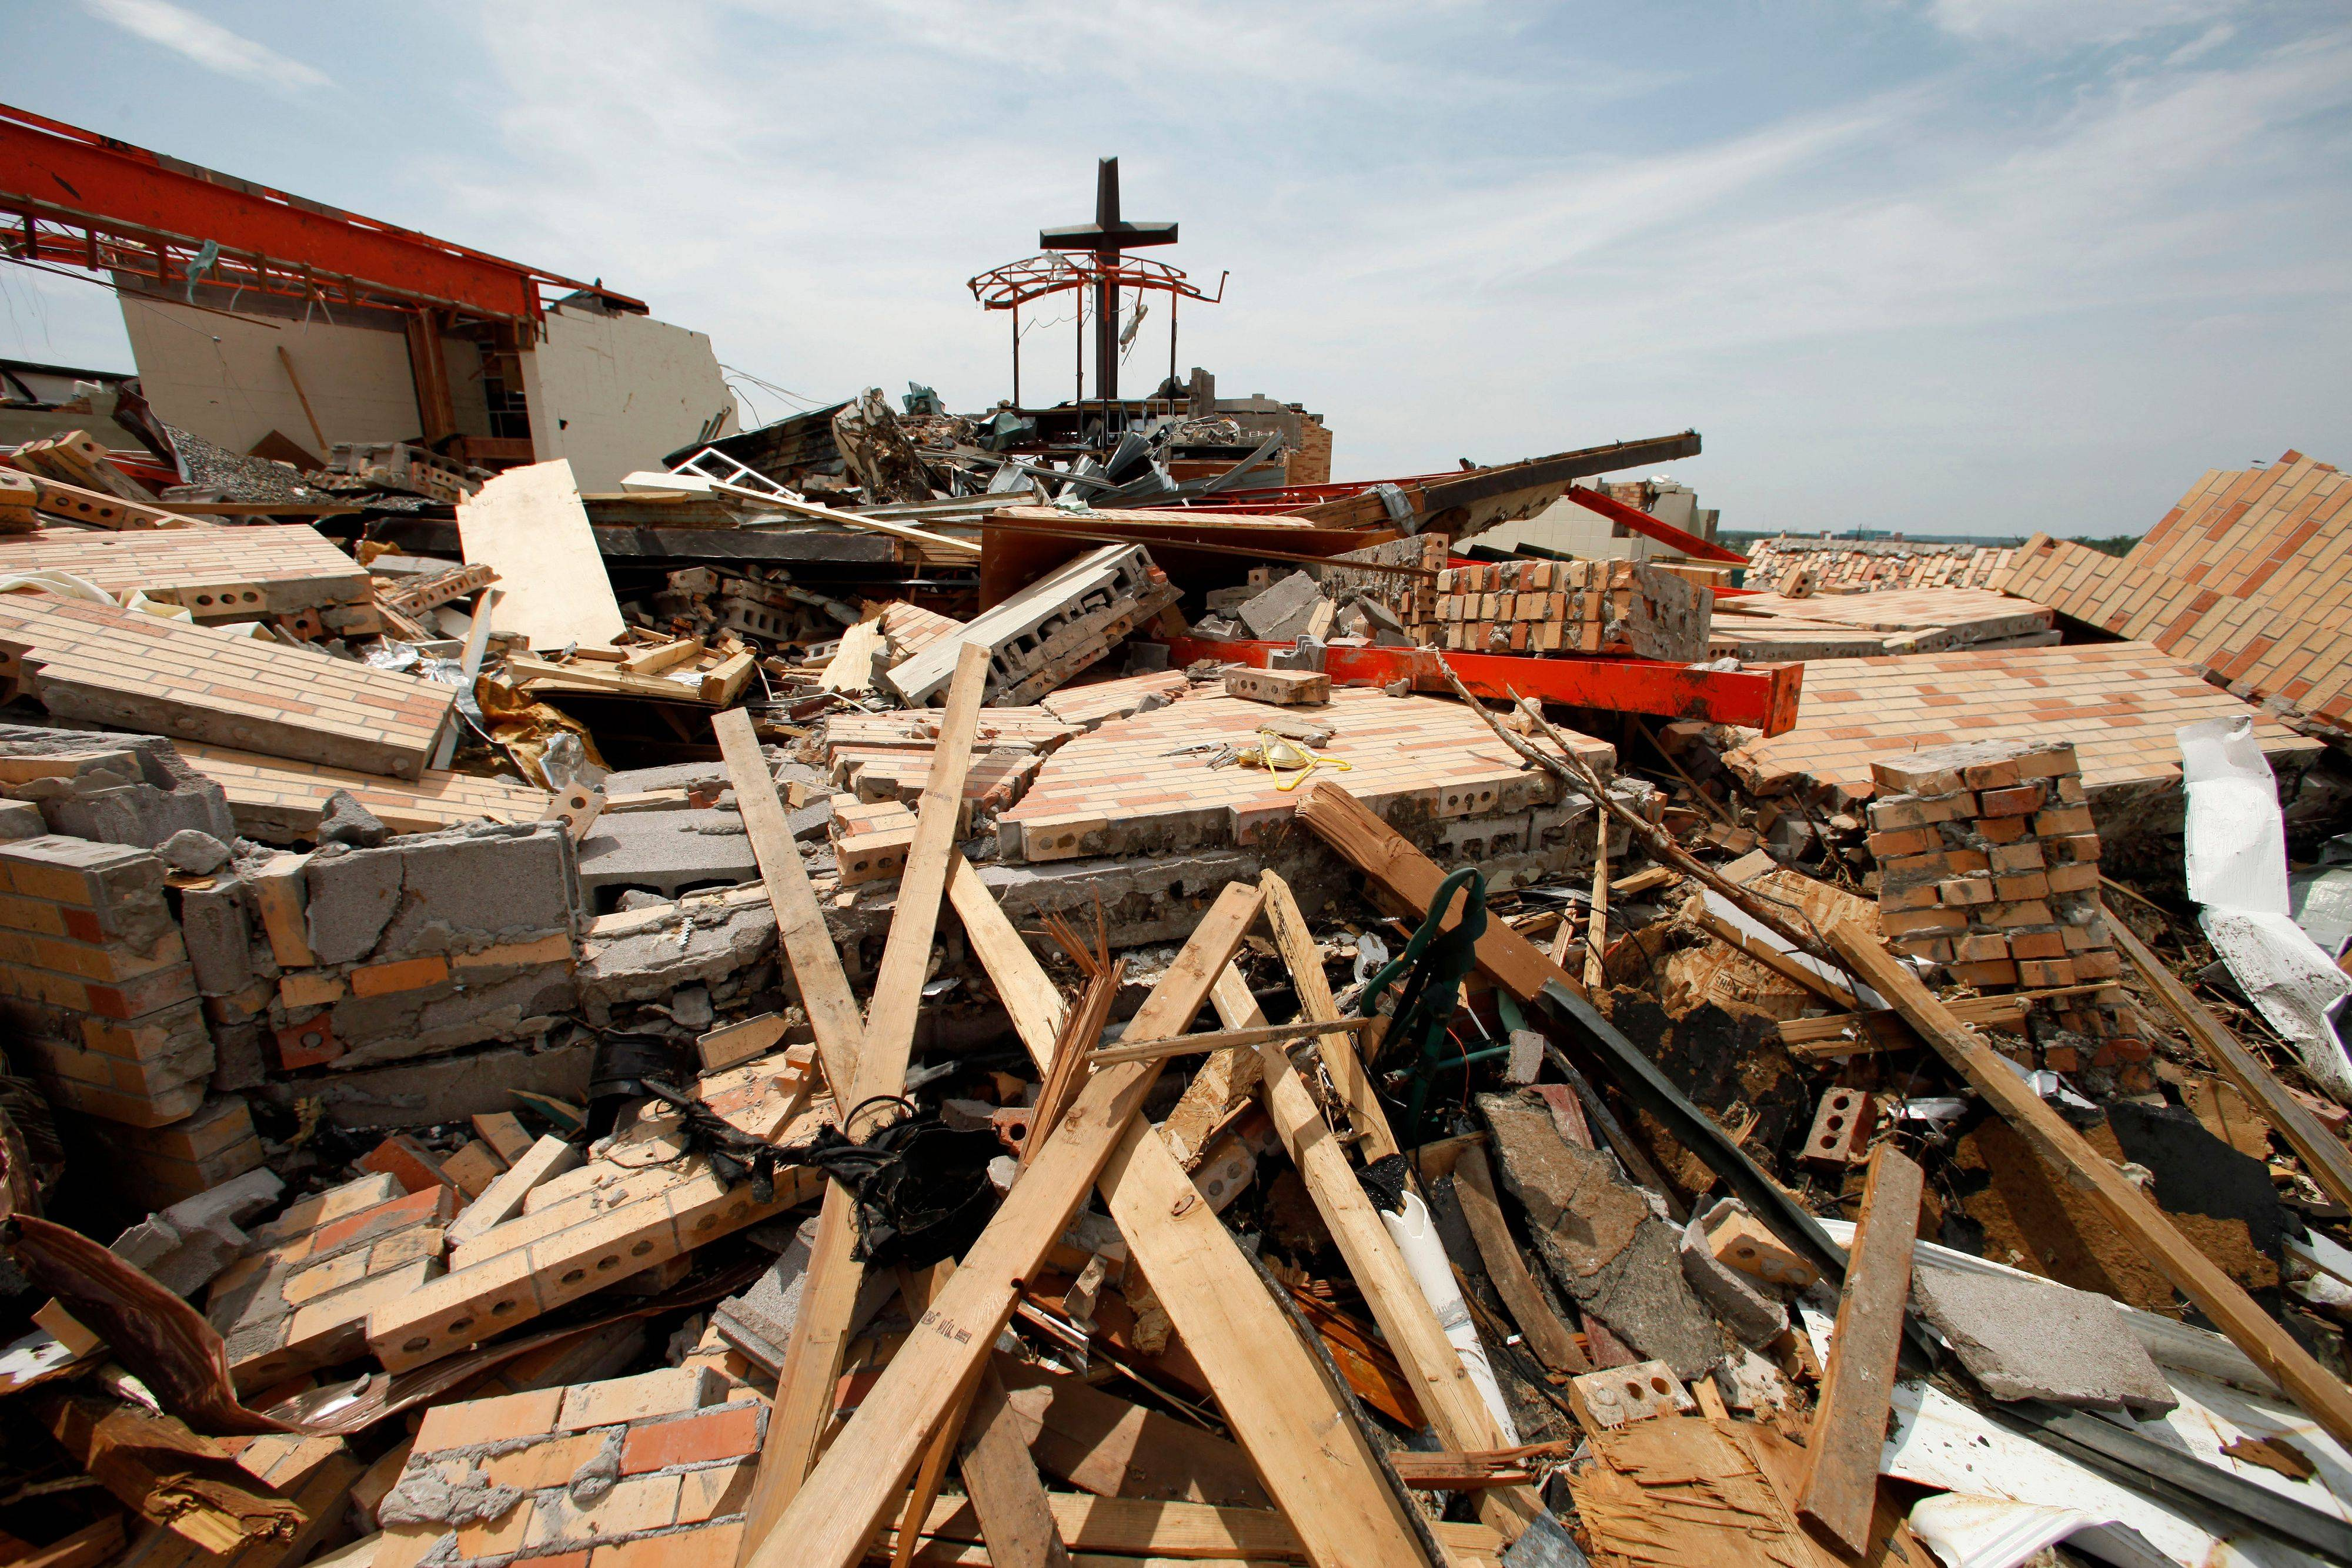 On May 30, damage is seen in a devastated Joplin, Mo., neighborhood.